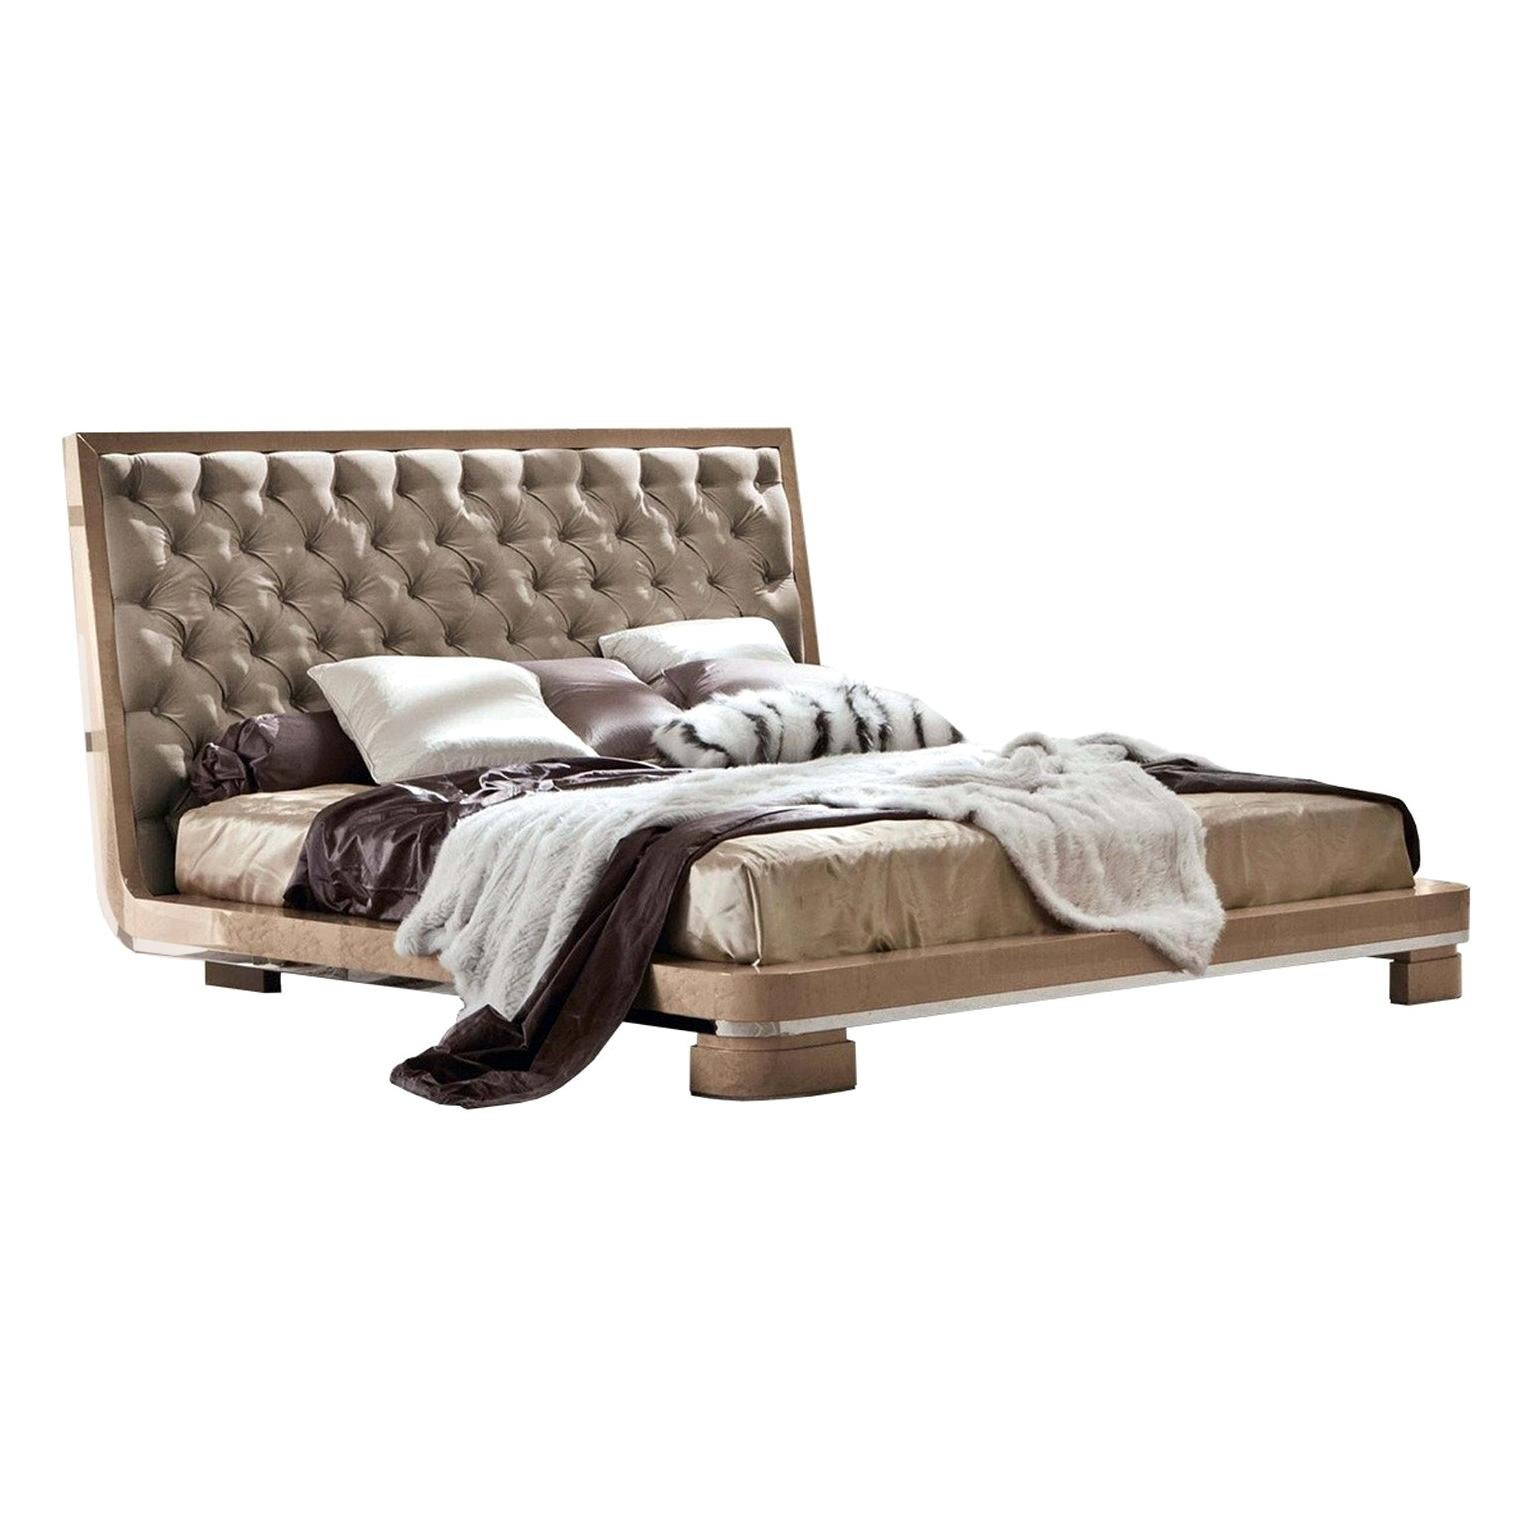 Giorgio Collection Leather Headboard King Bed Bird Eye Maple Wood Glossy Finish